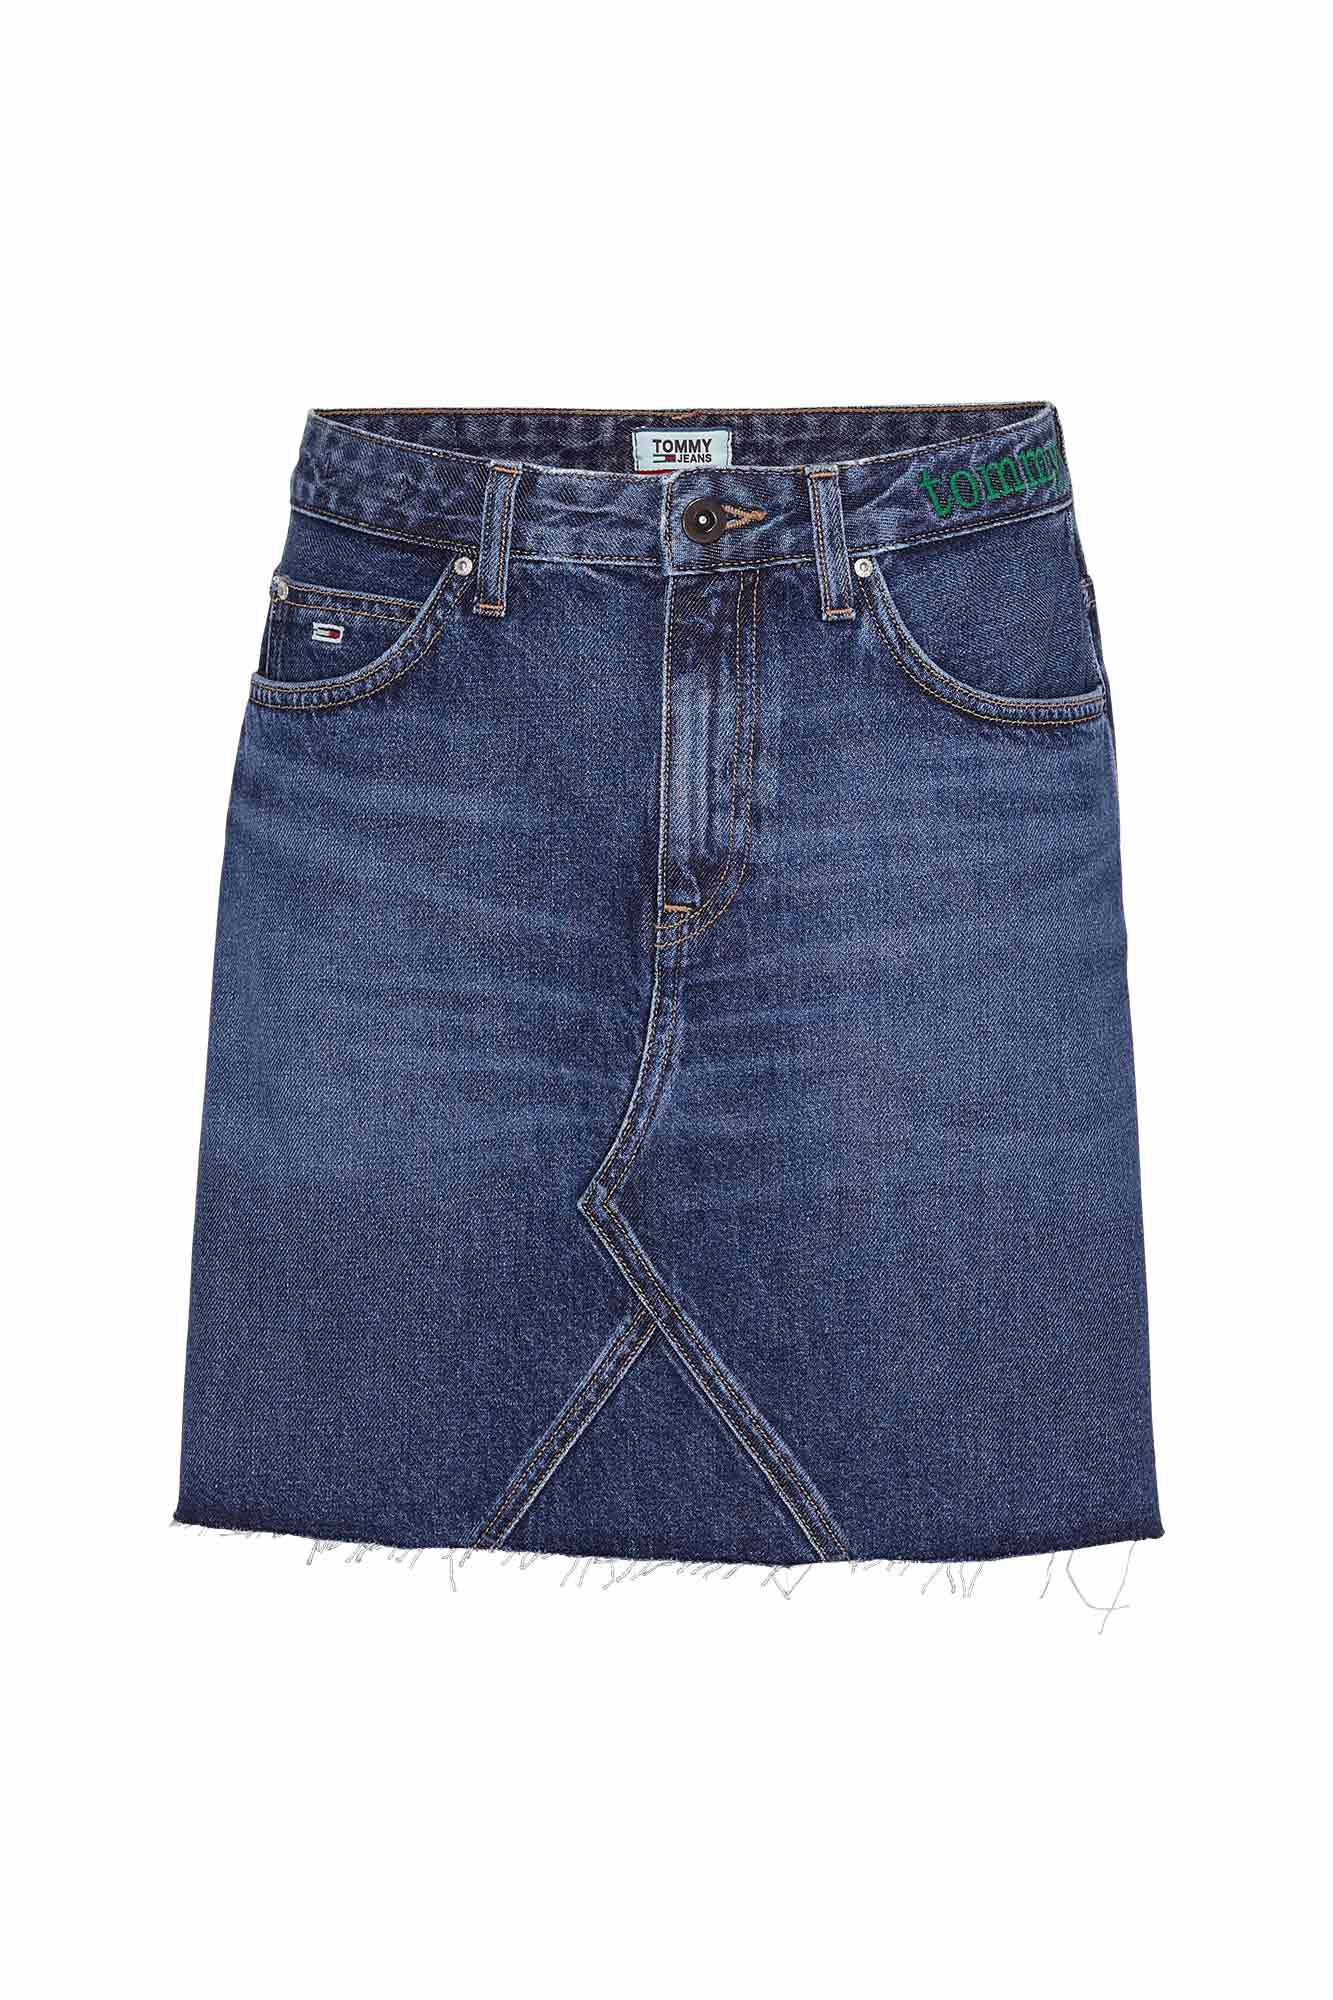 Tj short denim DW0DW06874, TJ SAVE MID BL RIG